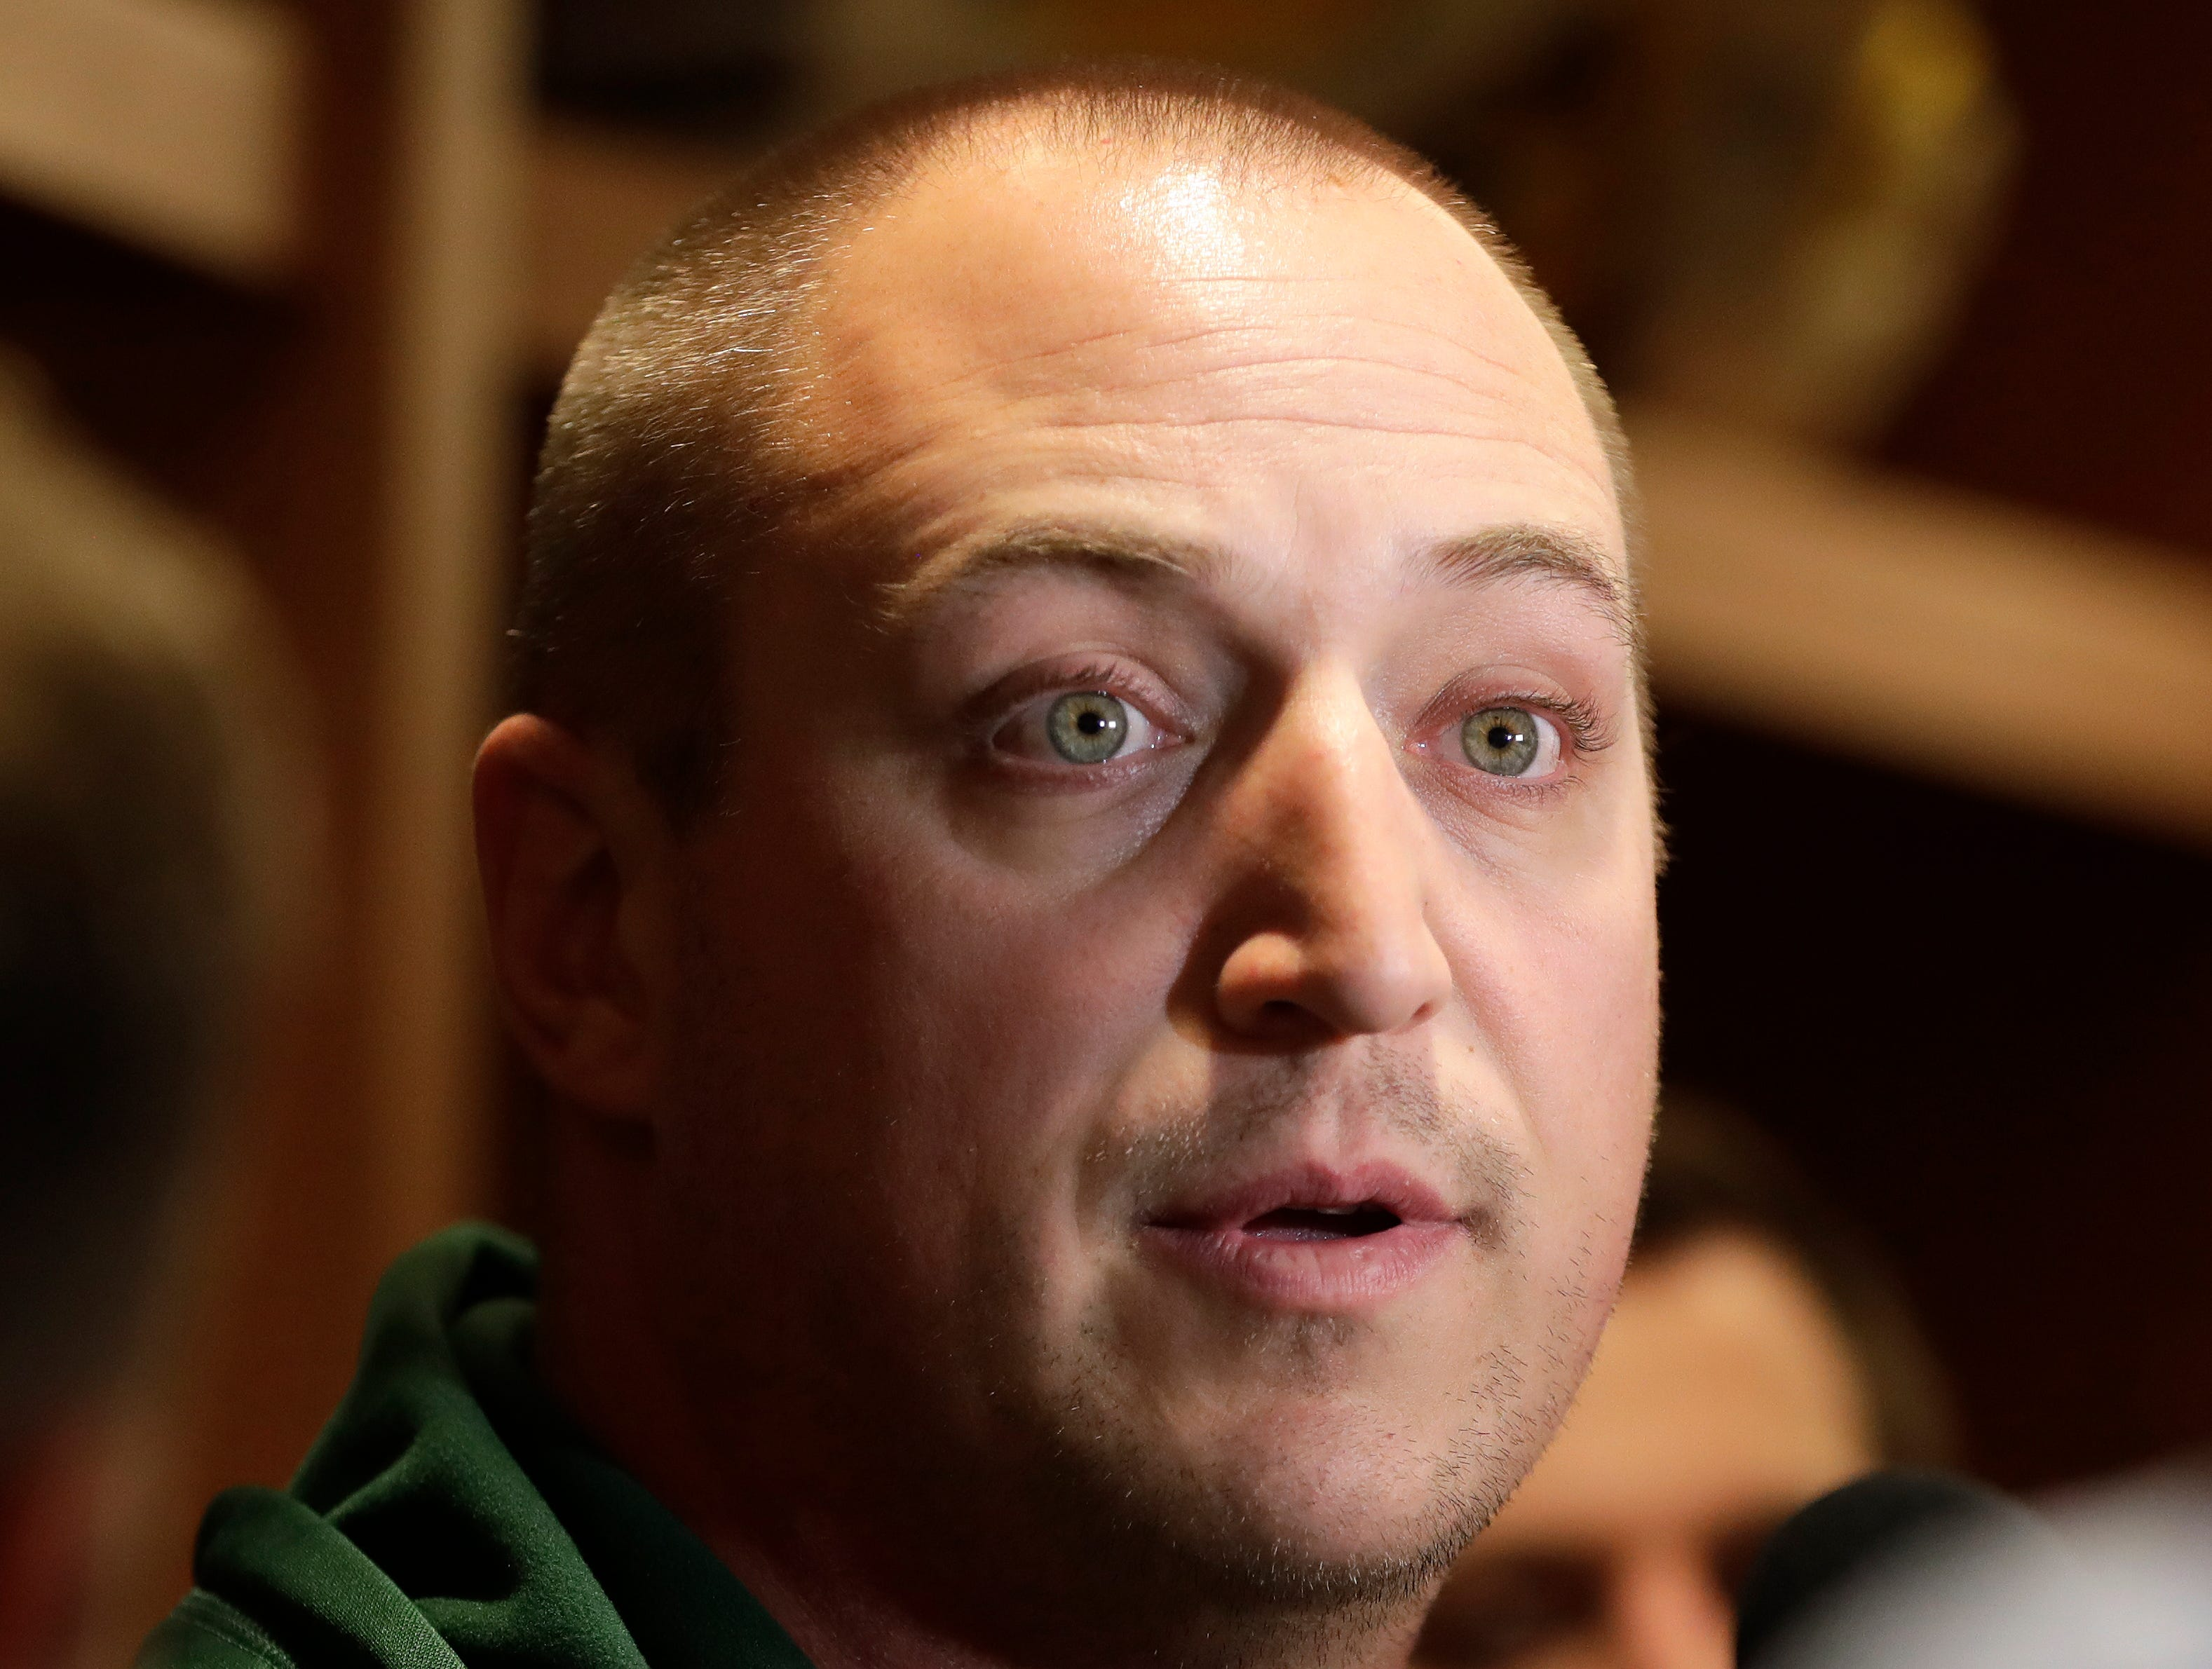 Adam Stenavich, offensive line coach for the Green Bay Packers, speaks to media on Feb. 18, 2019 at Lambeau Field in Green Bay, Wis.